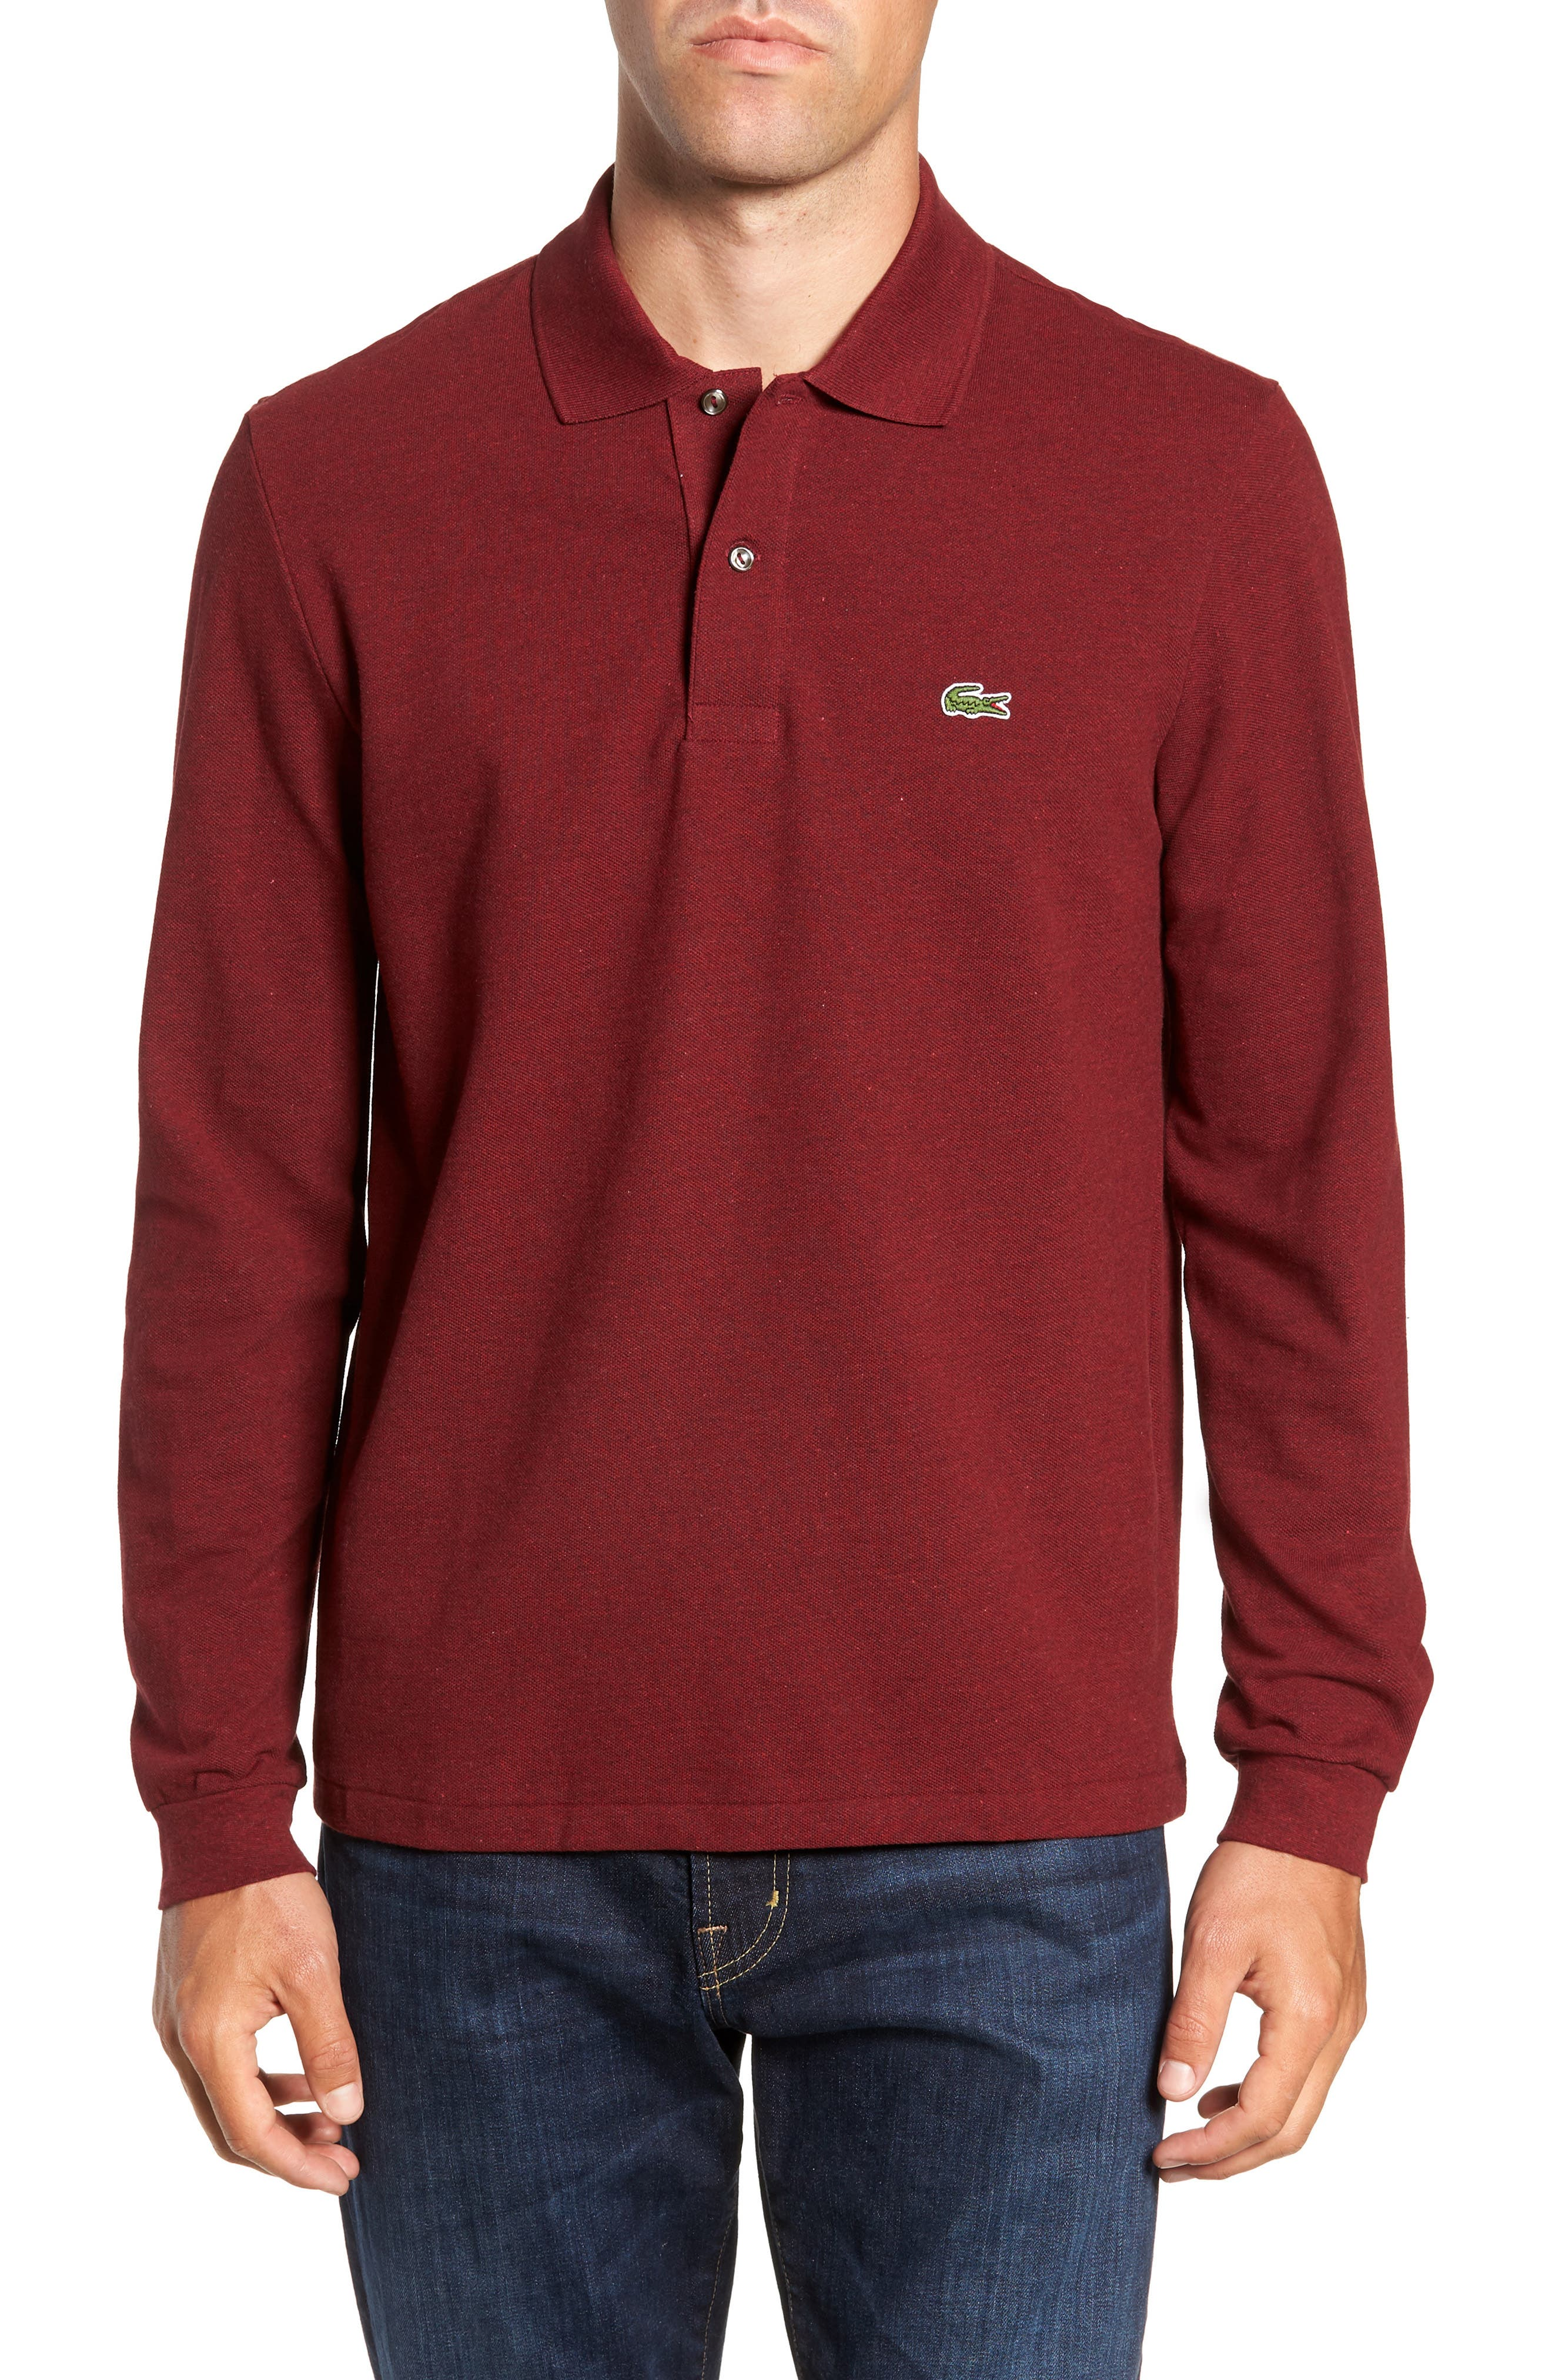 LACOSTE Long Sleeve Pique Polo in Sauge Chine